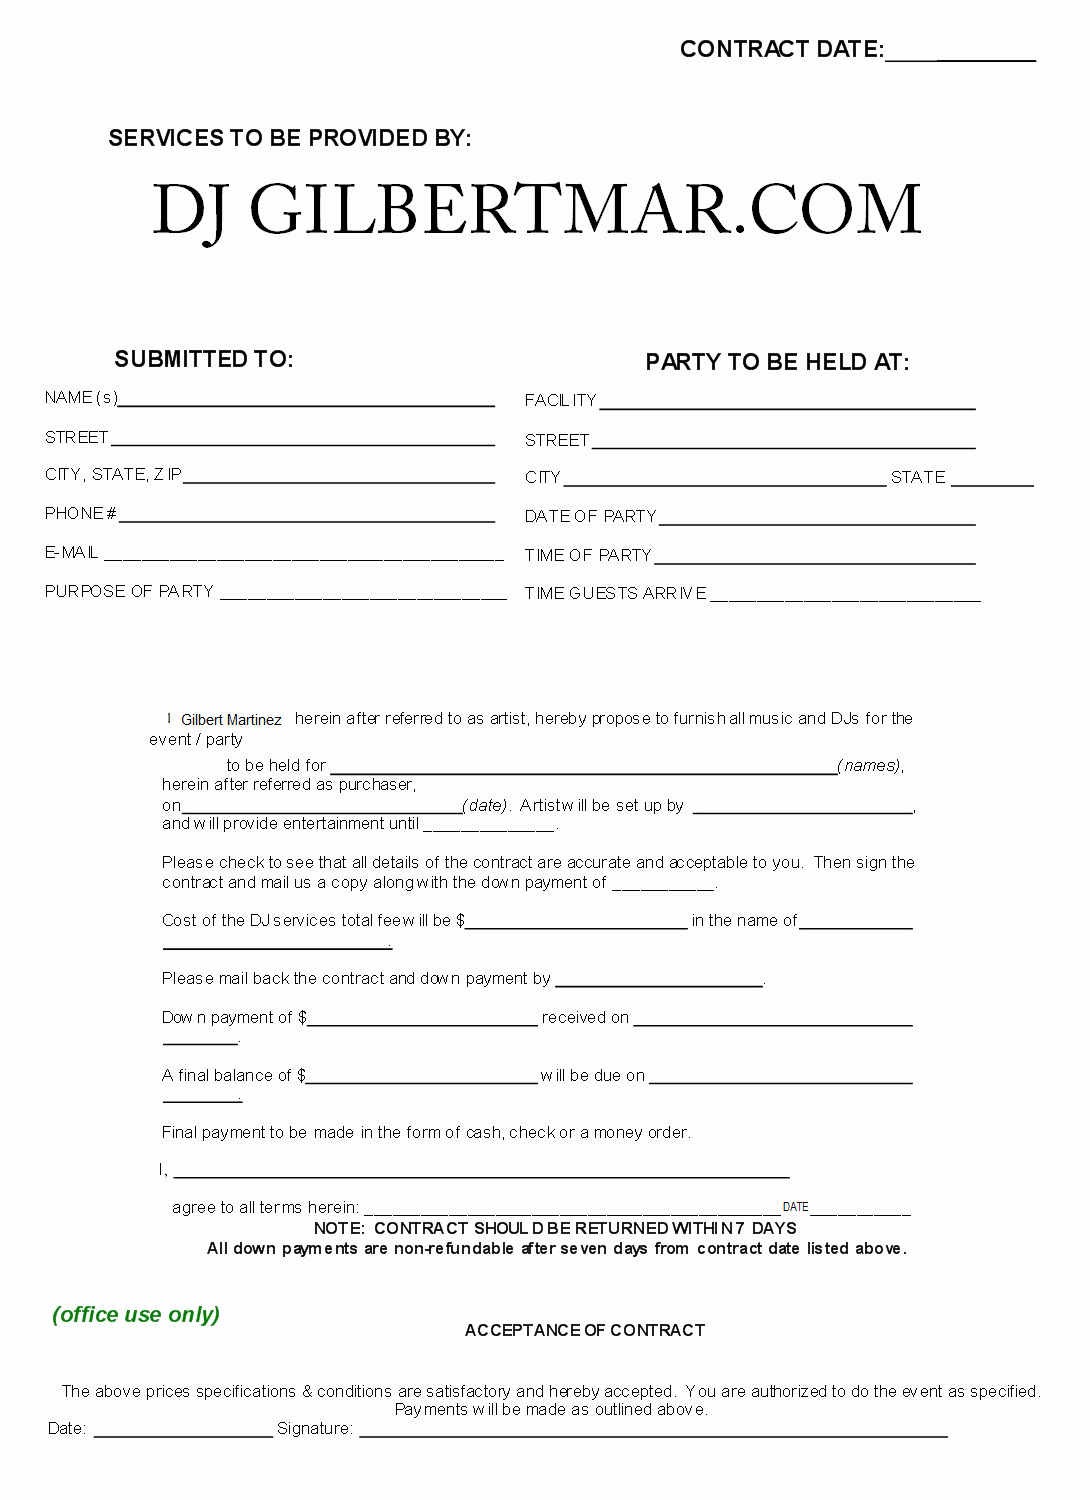 Free Dj Contract Template New Sample Dj Contract Agreement Free Printable Documents